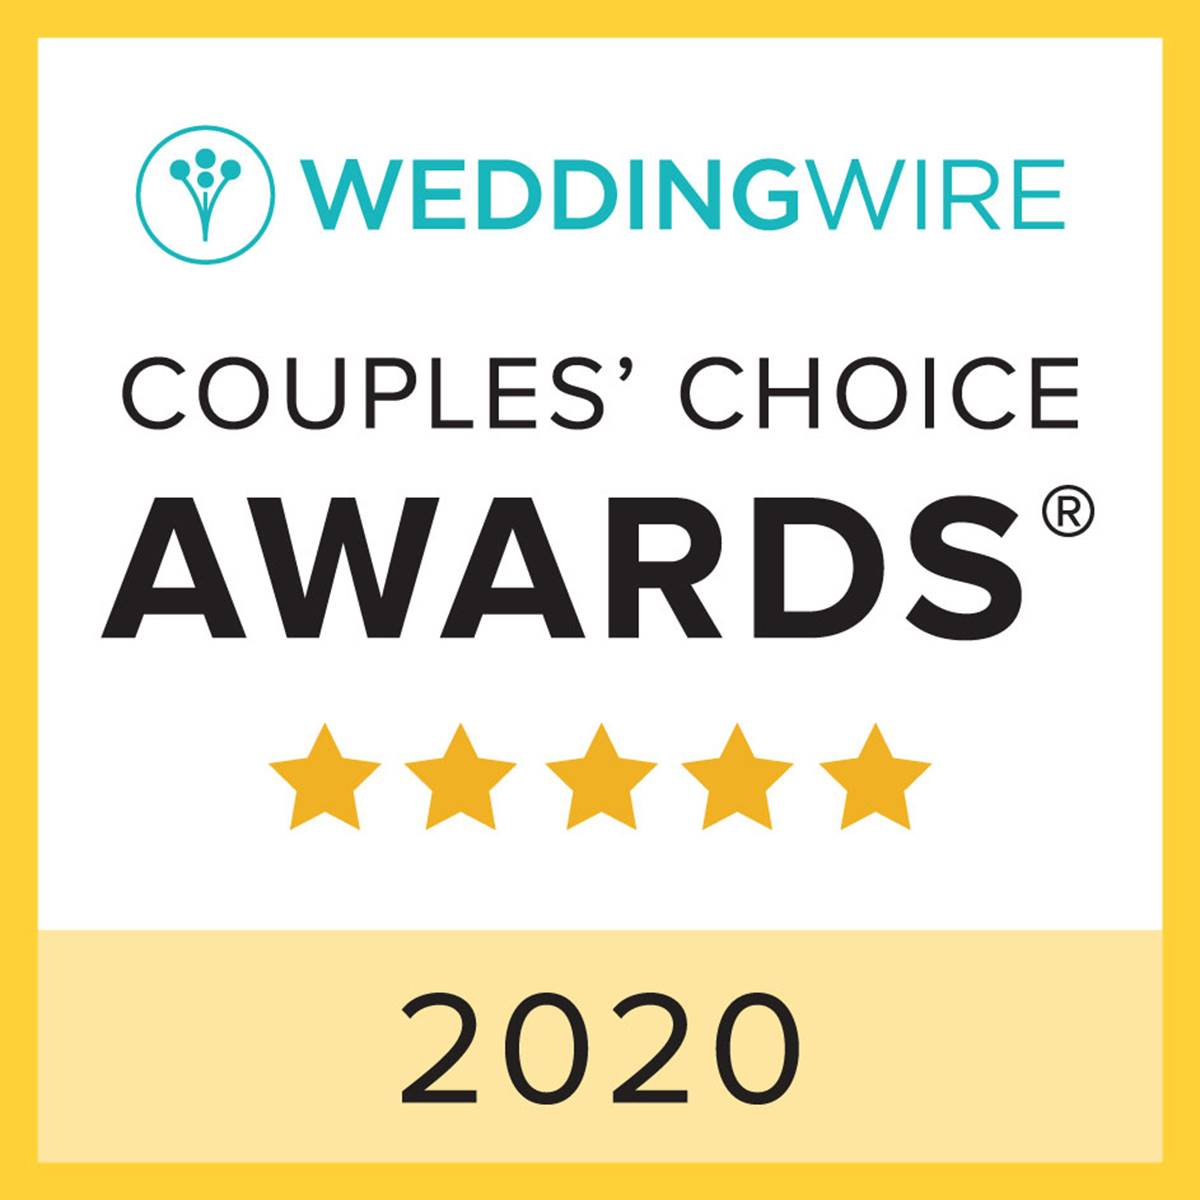 Wedding Wire Couples' Choice Awards 2020 Union Bluff